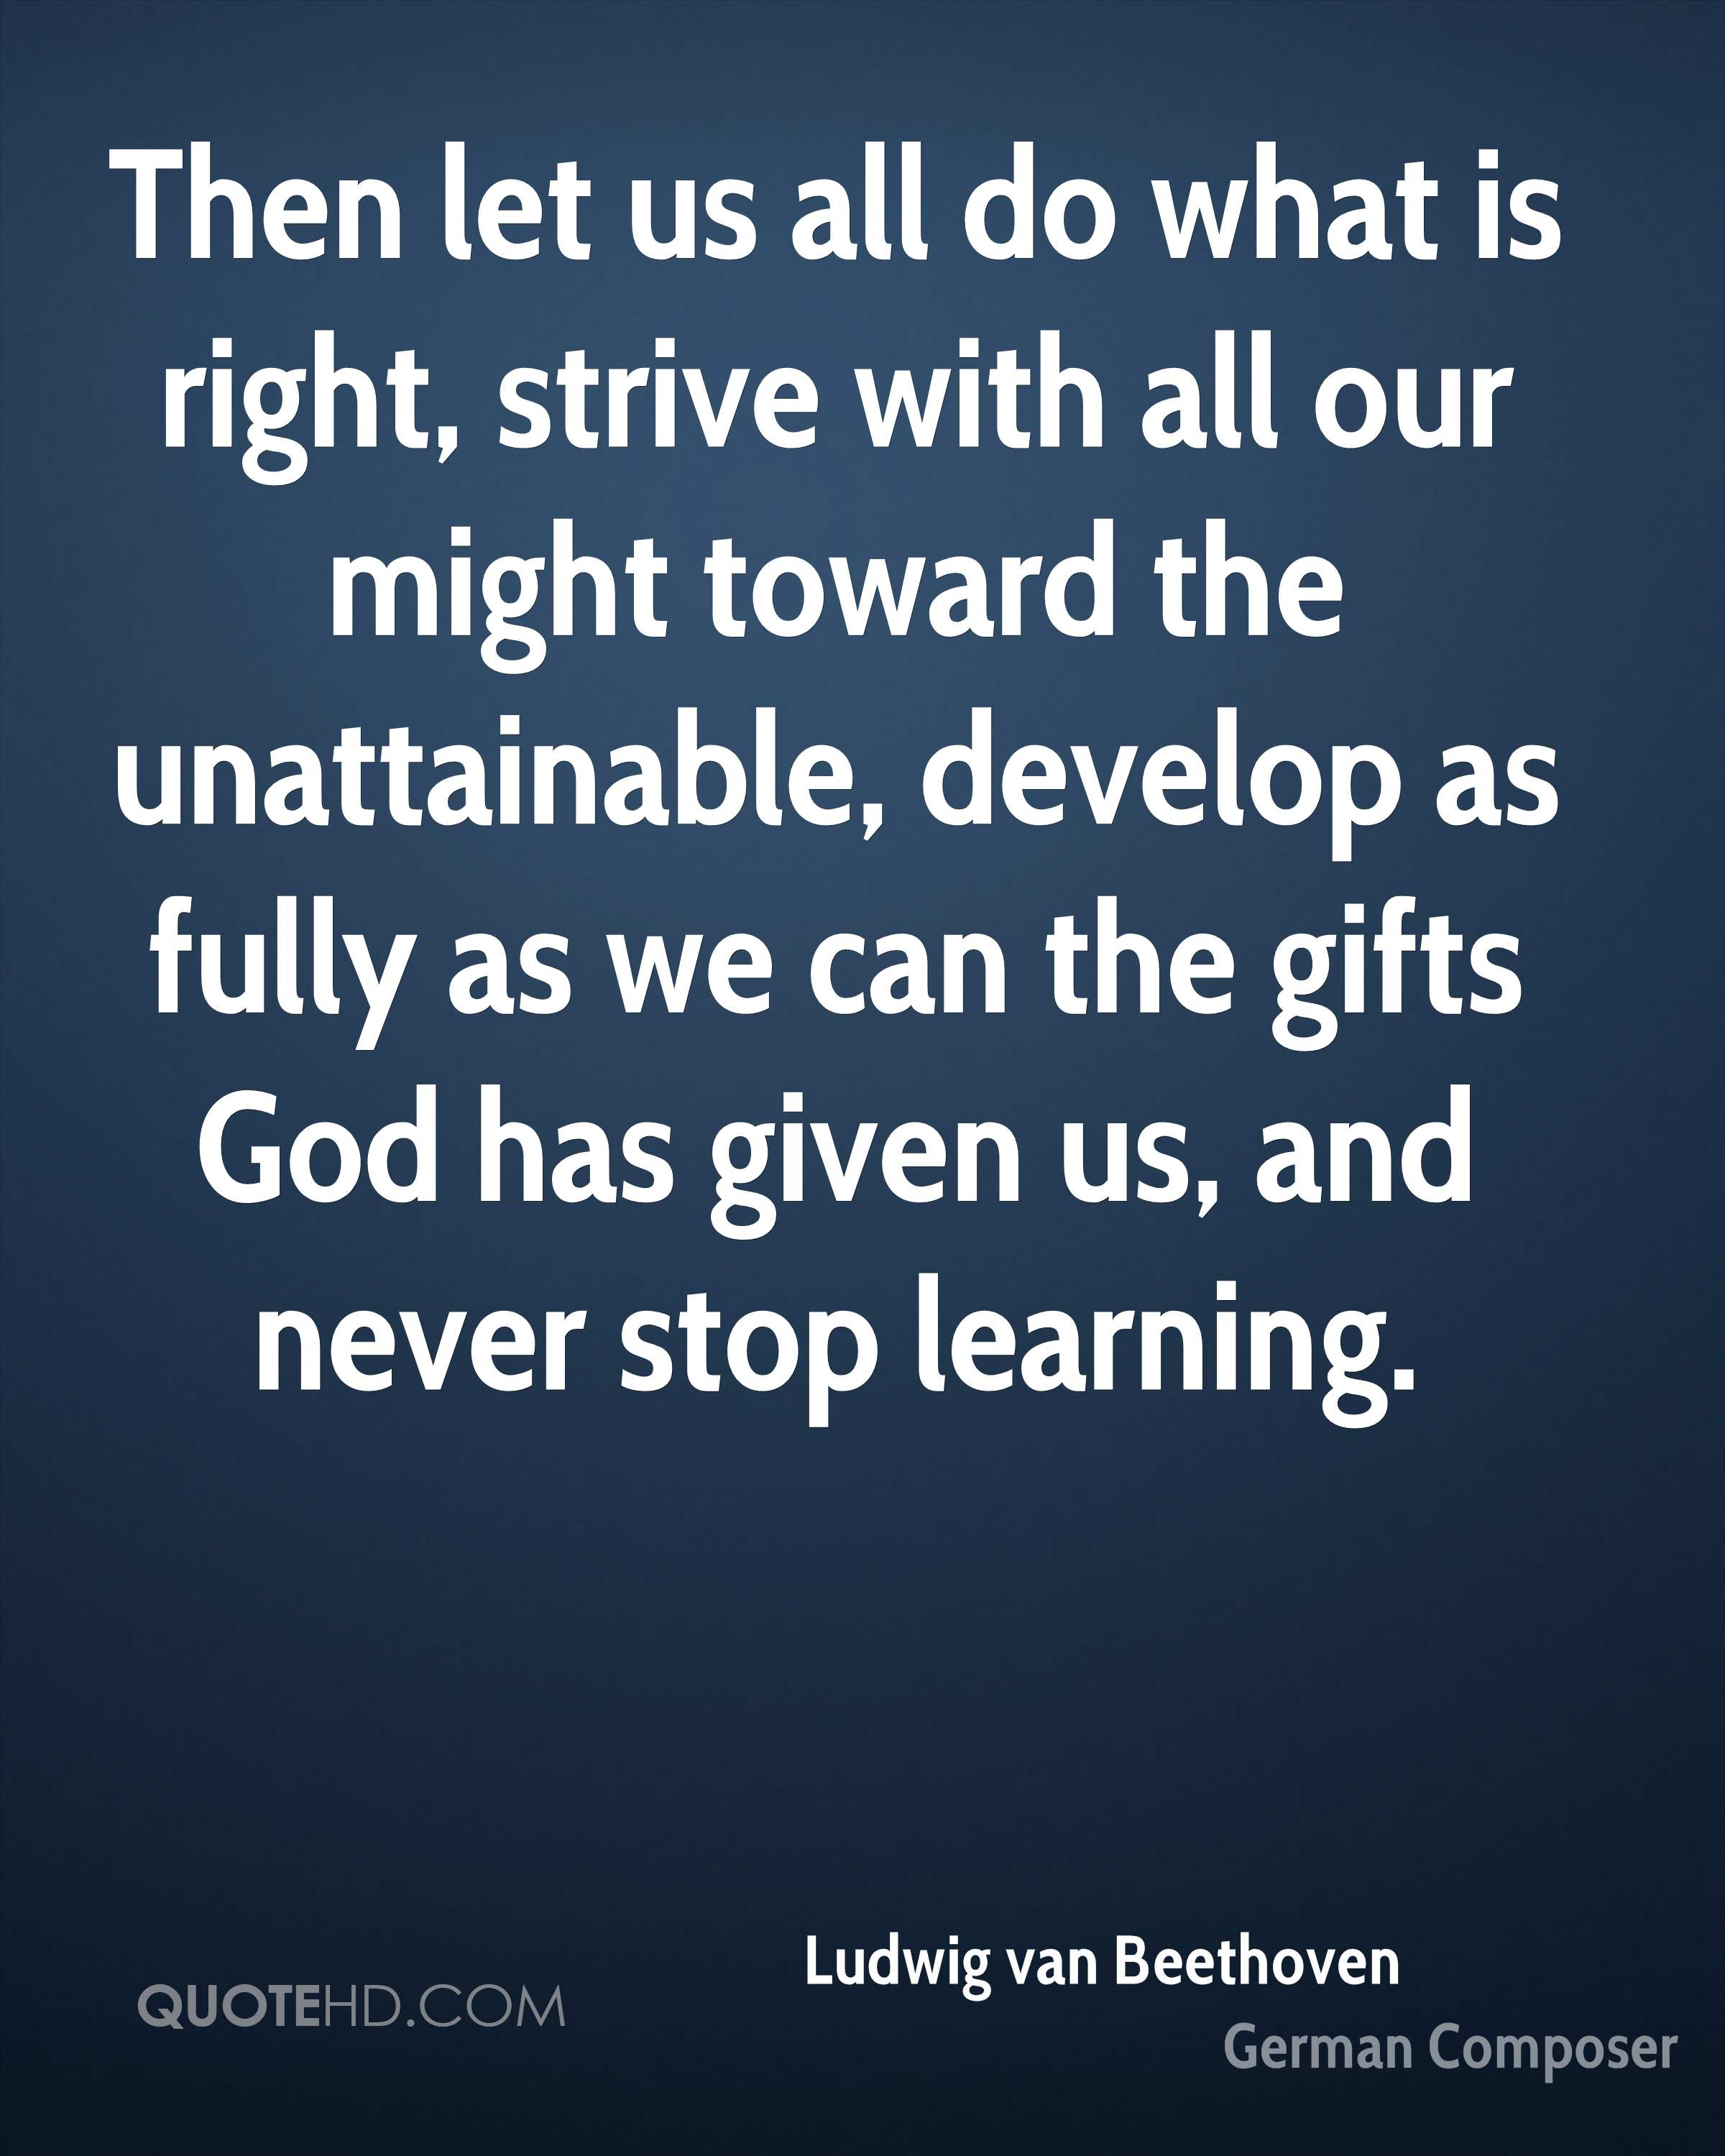 Then let us all do what is right, strive with all our might toward the unattainable, develop as fully as we can the gifts God has given us, and never stop learning.